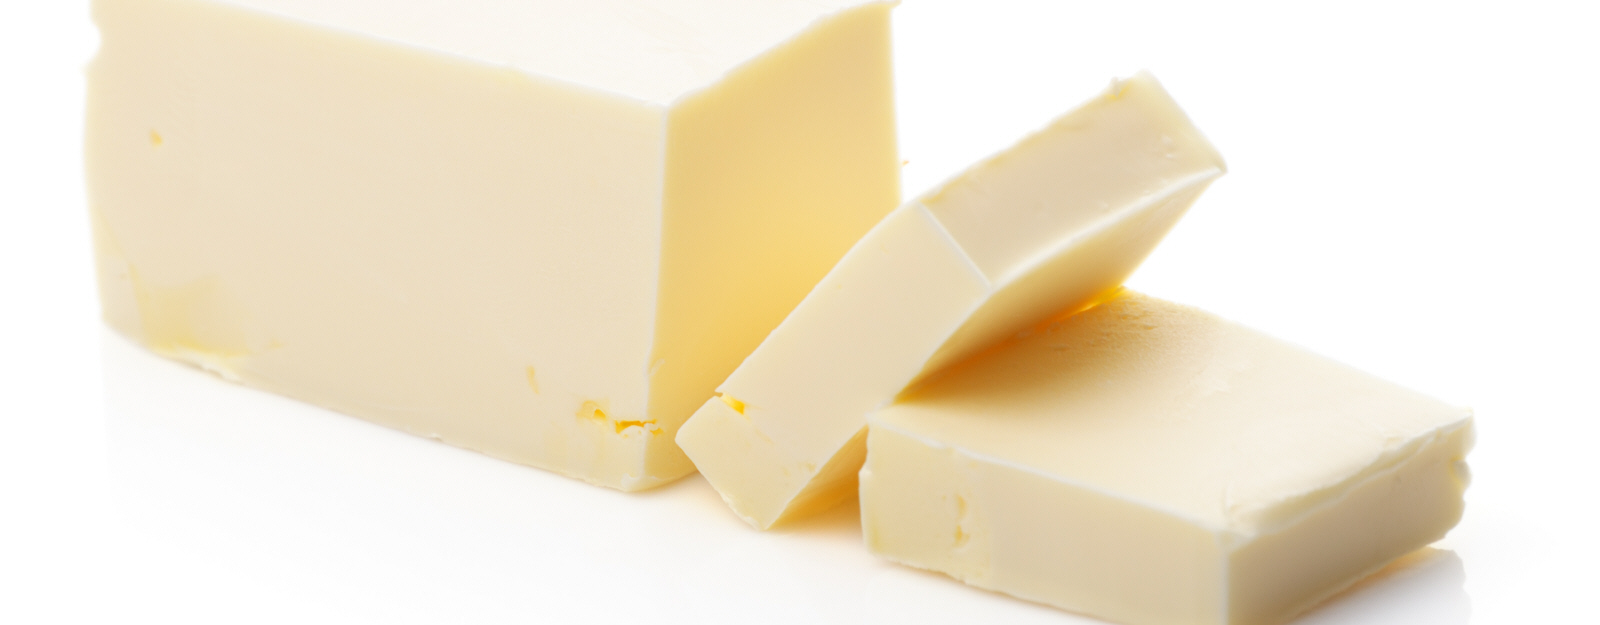 how tall is your butter and why core77